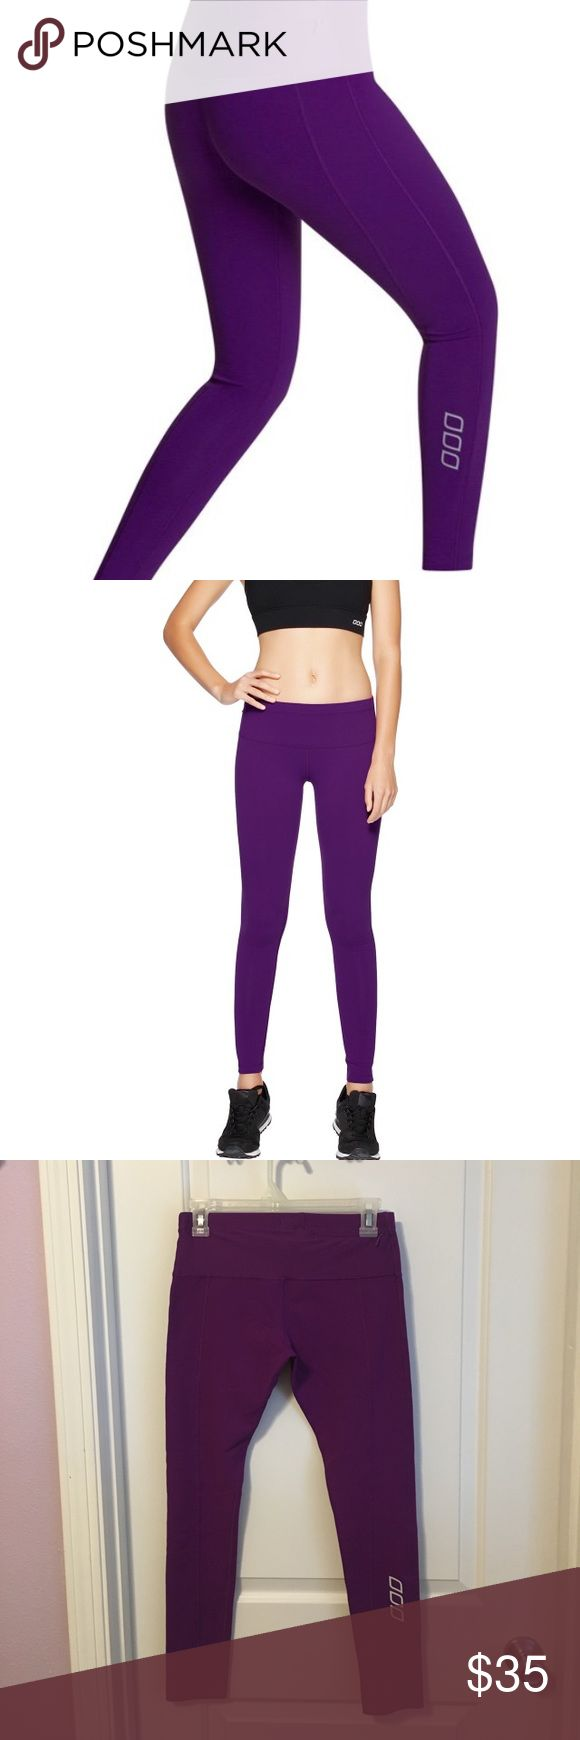 "Lorna Jane Karli Support Tights Ultimate support and comfort is what LJ Excel Core stability gives the active wearer, and it features in the higher waistband of this tight. Internal drawcord in waistband to adjust your fit. Zip pocket on back right waistband. Be seen reflective on back right calf, perfect for outdoor active living. 88% Nylon, 12% Elastane. No tag but measure XS with other LJ crops. Measures 12 3/4"" across waist and inseam is 26.5. Gently used with just one area of piling…"